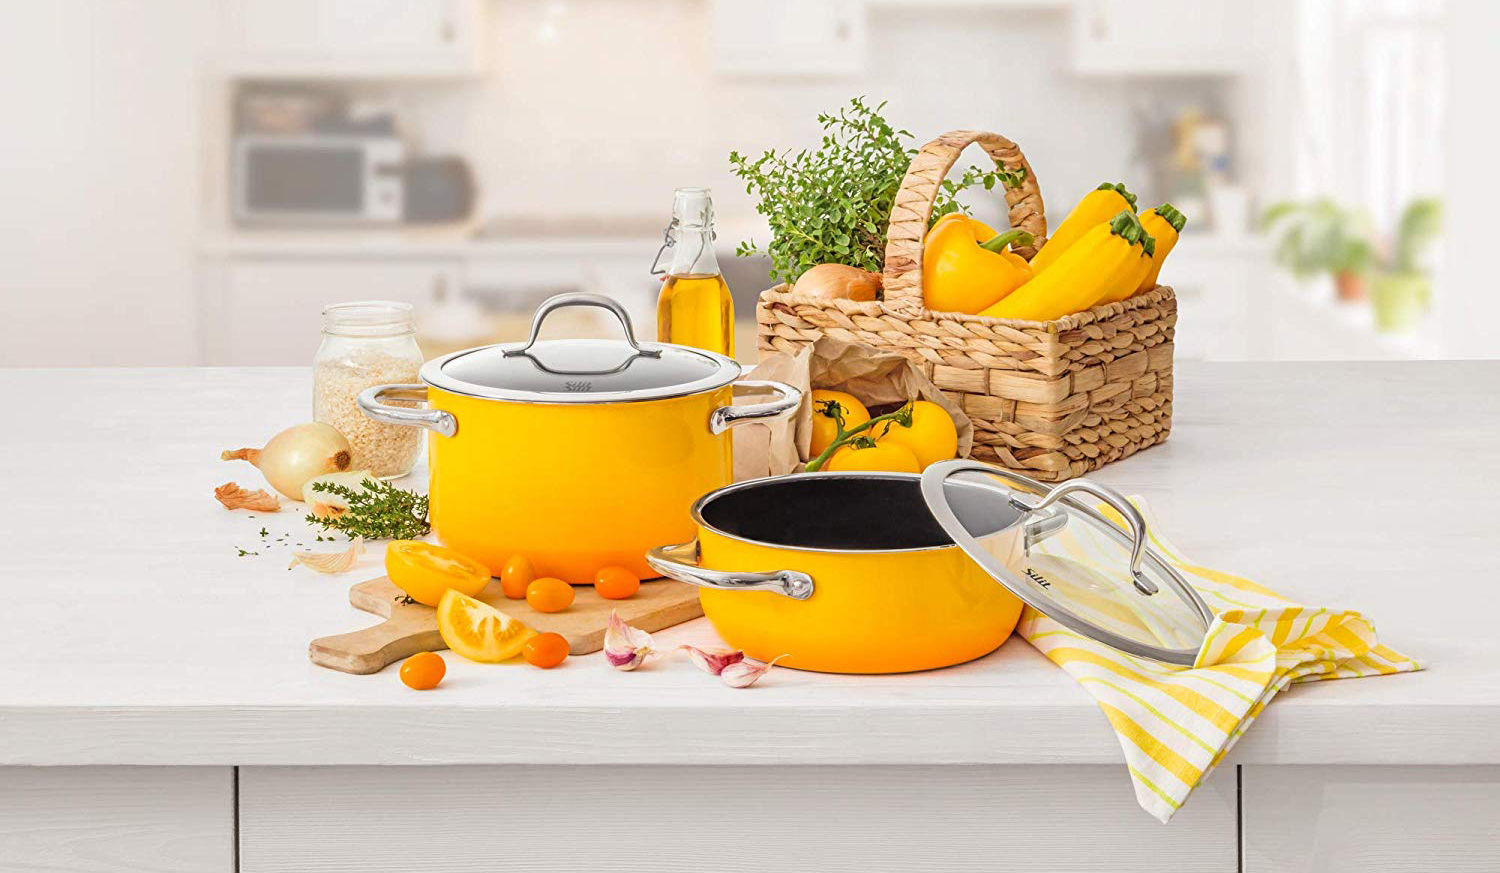 Yellow Silit Silargan Cookware set made in Germany